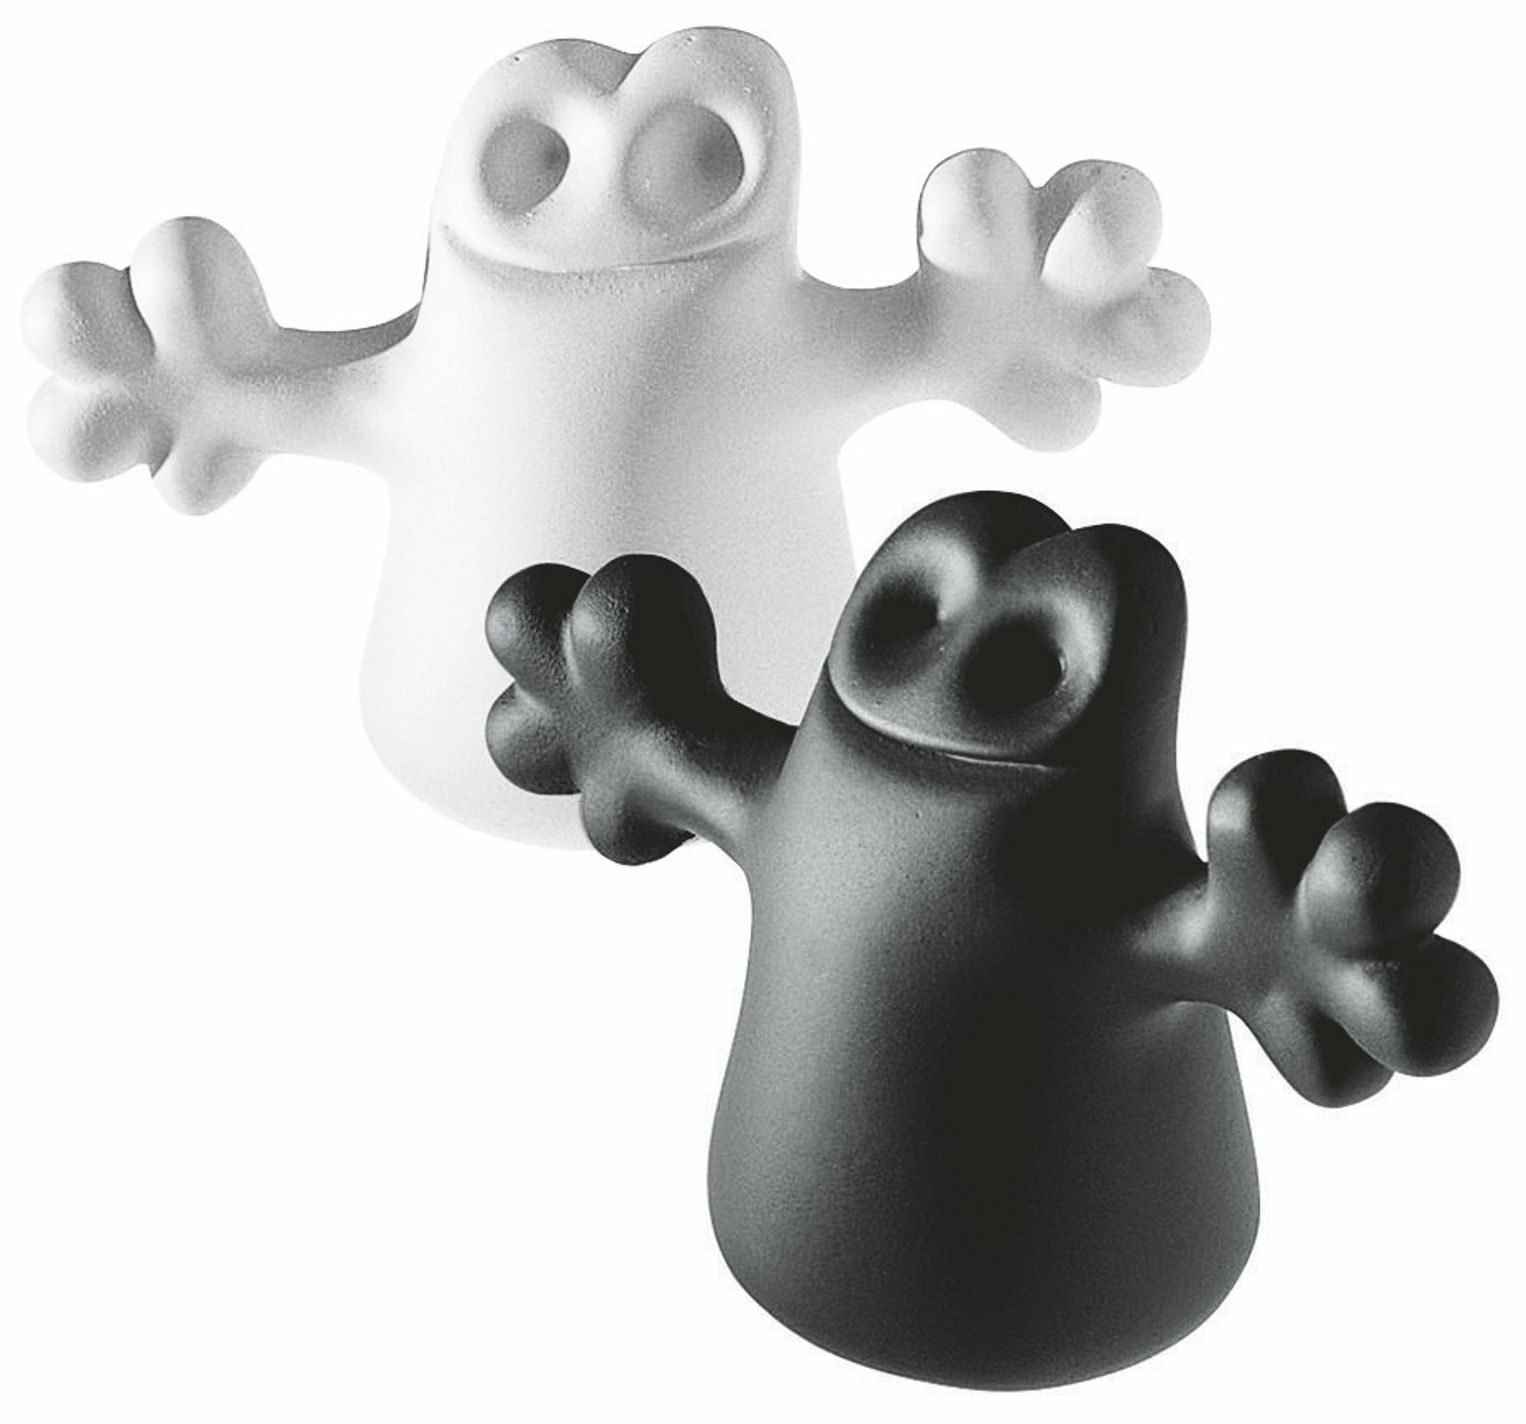 Kitchenware - Fun in the kitchen - Carlo Cork - Set of 2 by A di Alessi - Black / White - Thermoplastic resin